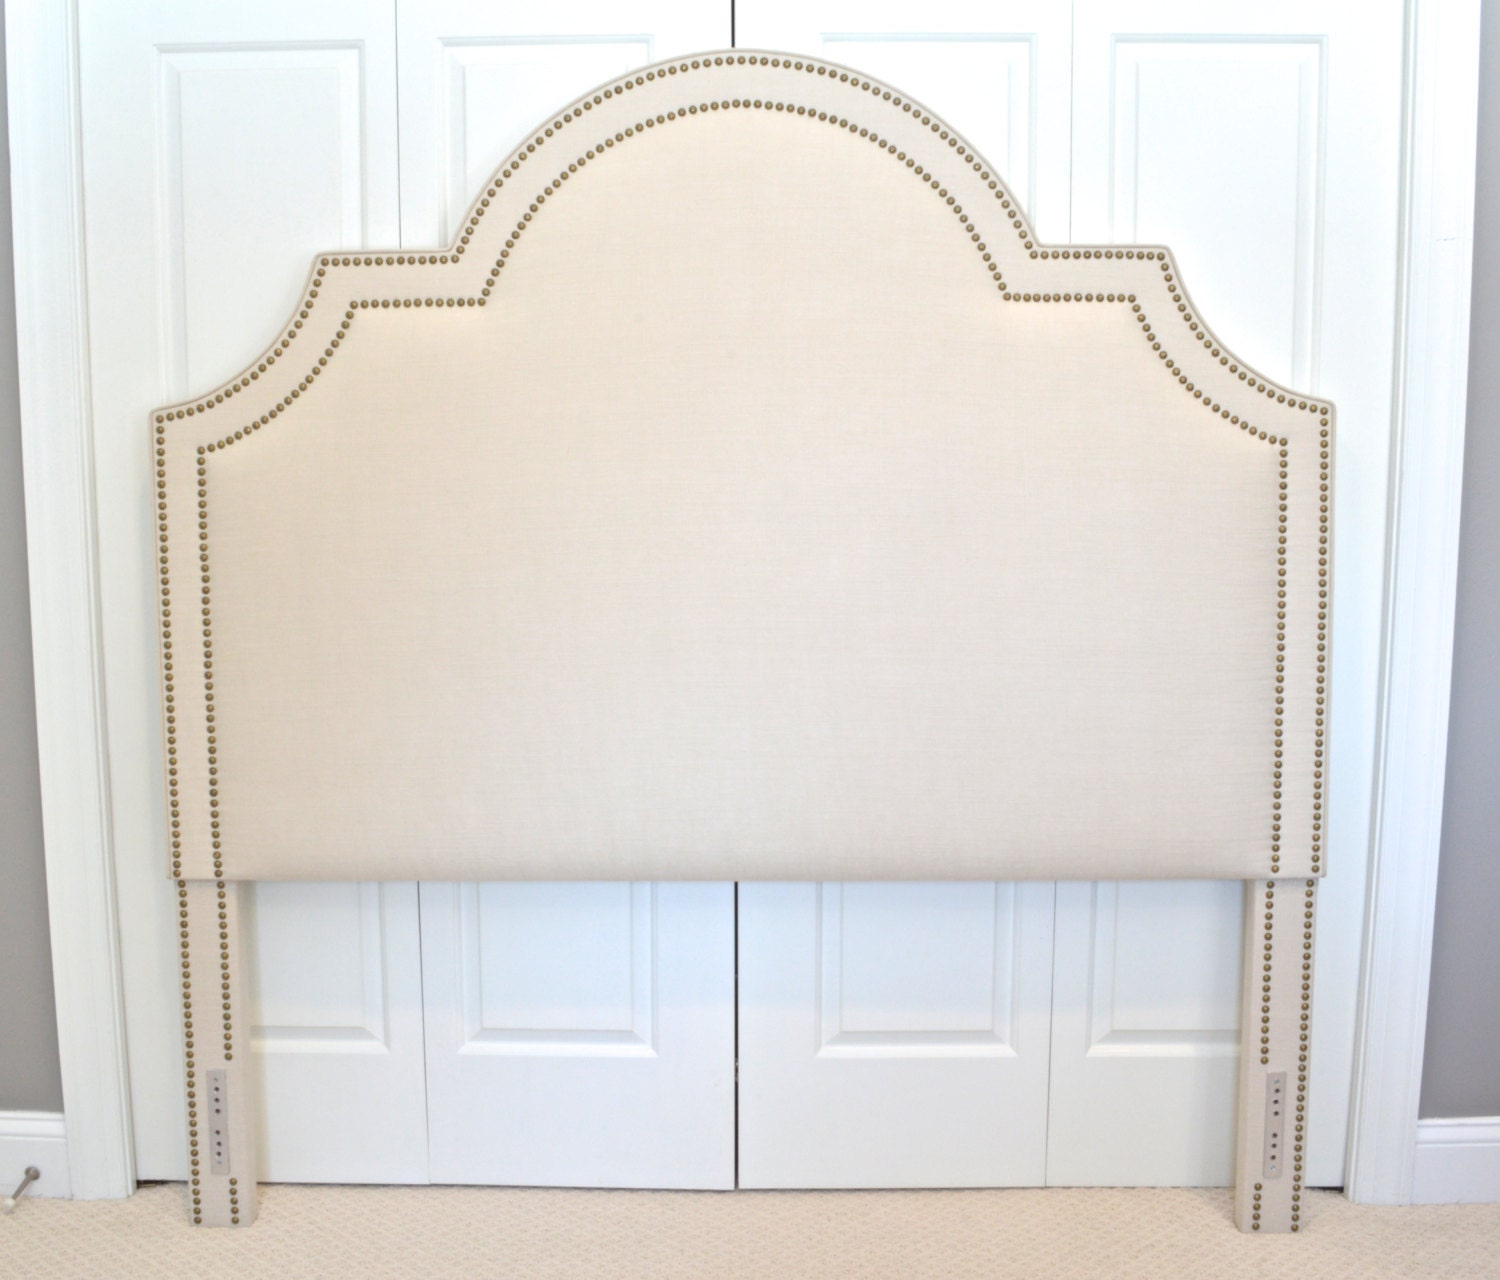 Upholstered Headboard King Queen Full Twin Size Portman Shaped